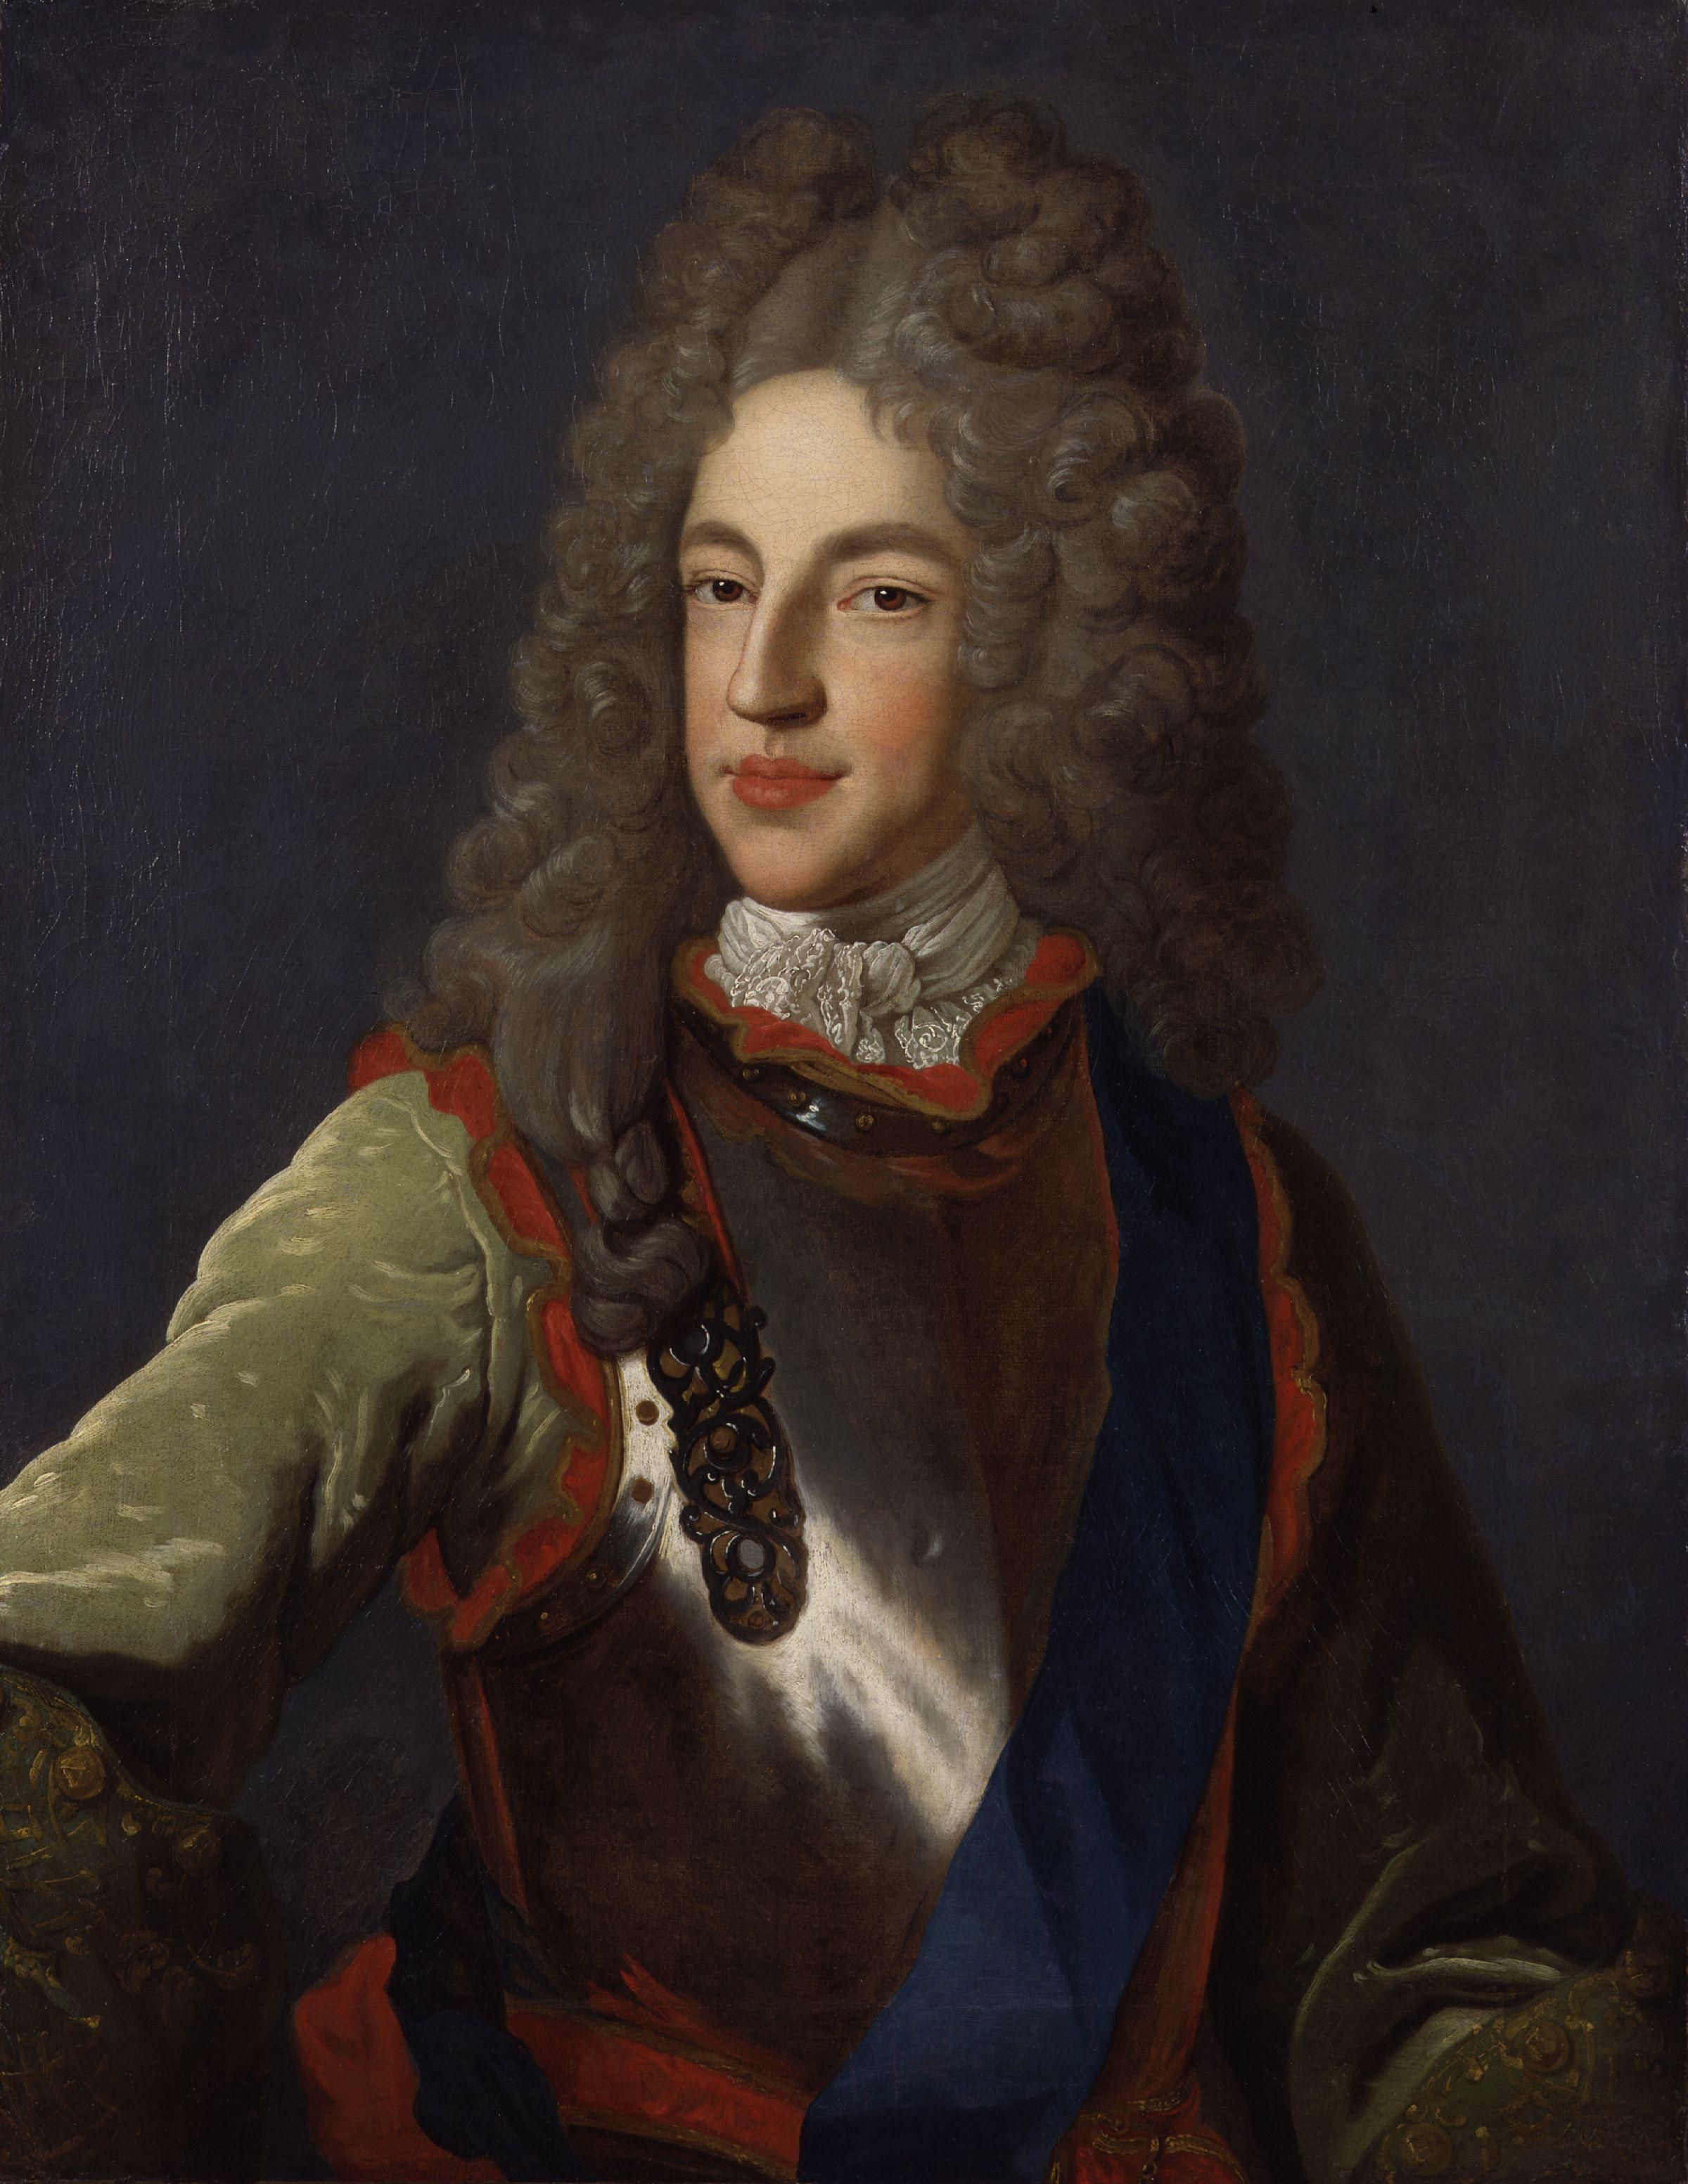 Prince_James_Francis_Edward_Stuart_by_Alexis_Simon_Belle.jpg